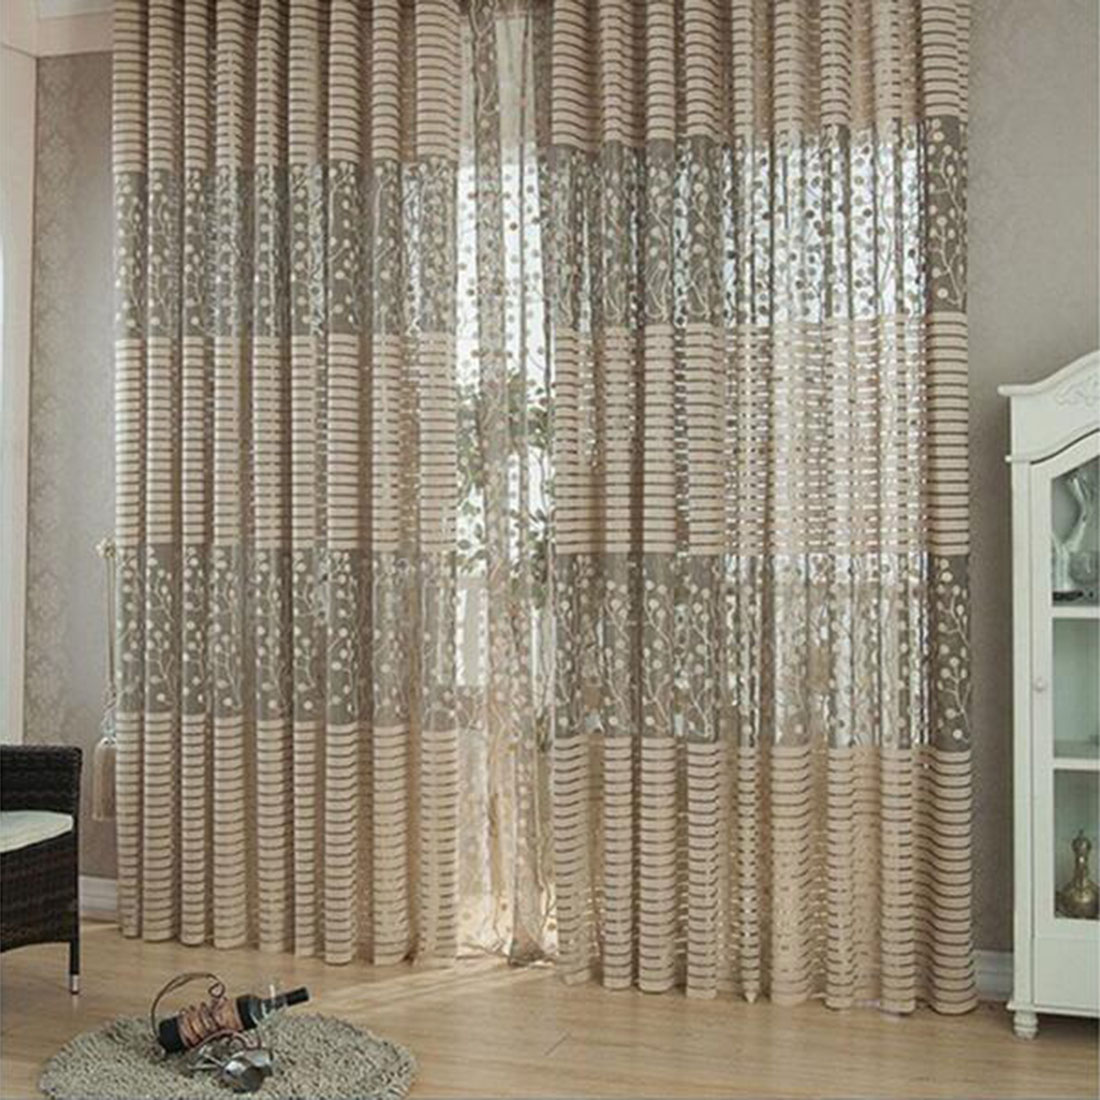 Warp Knitting Leaf Pattern Tulle Window Curtain Sheer Curtains For  Livingroom Bedroom Jacquard Embroidered Curtain Panel In Curtains From Home  U0026 Garden On ...